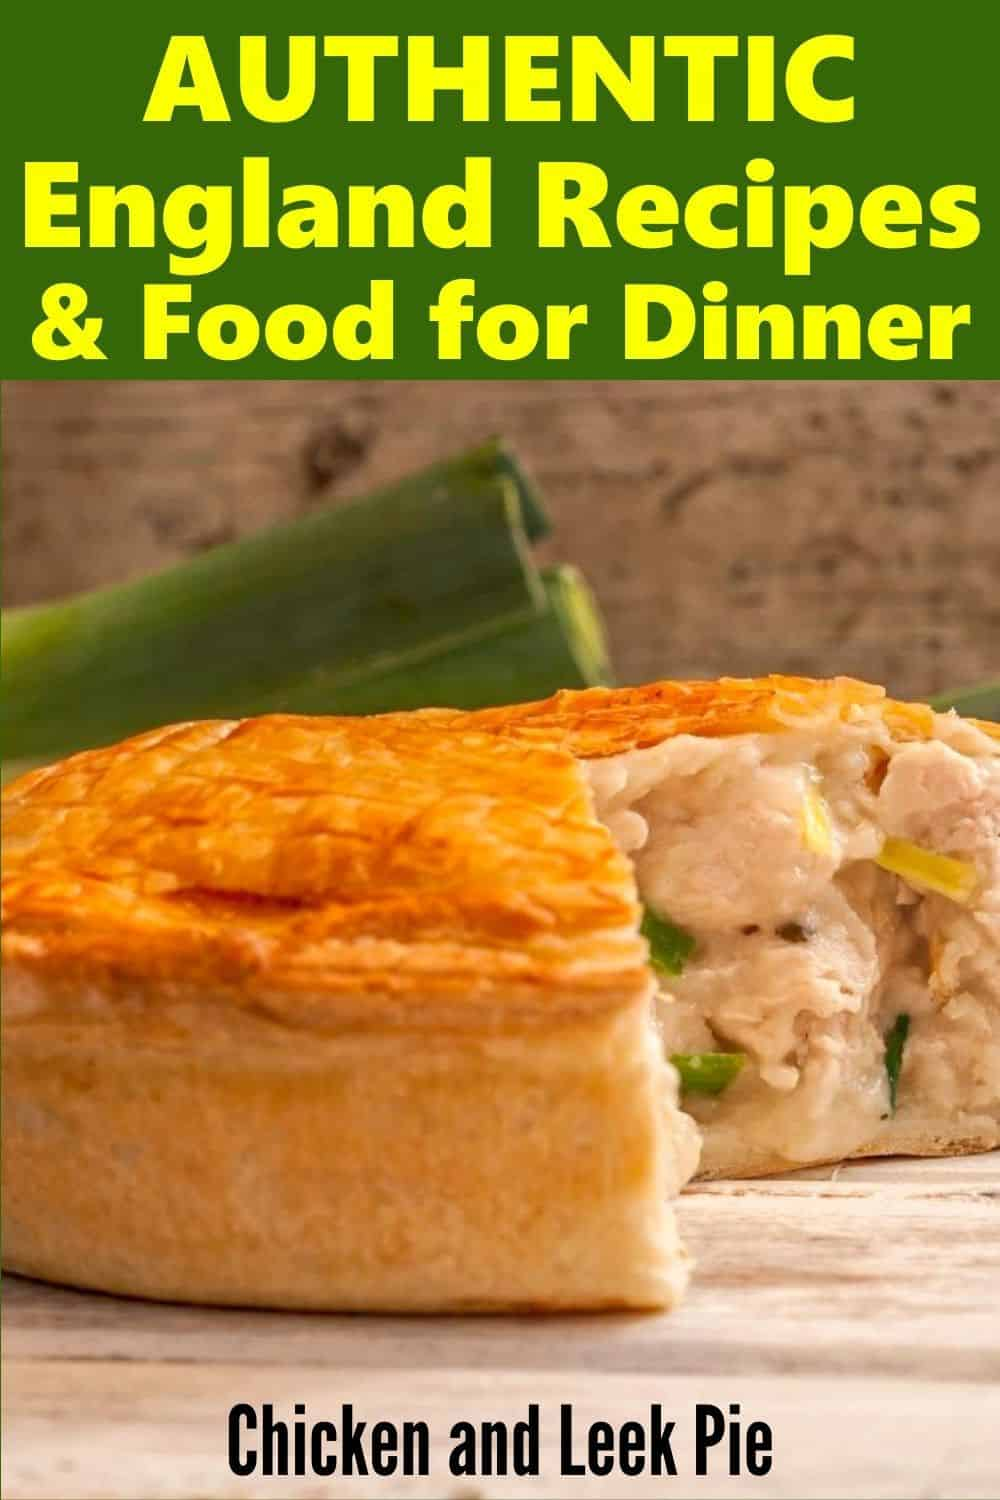 Authentic England Recipes and Food for Dinner - Chicken and Leek Pie